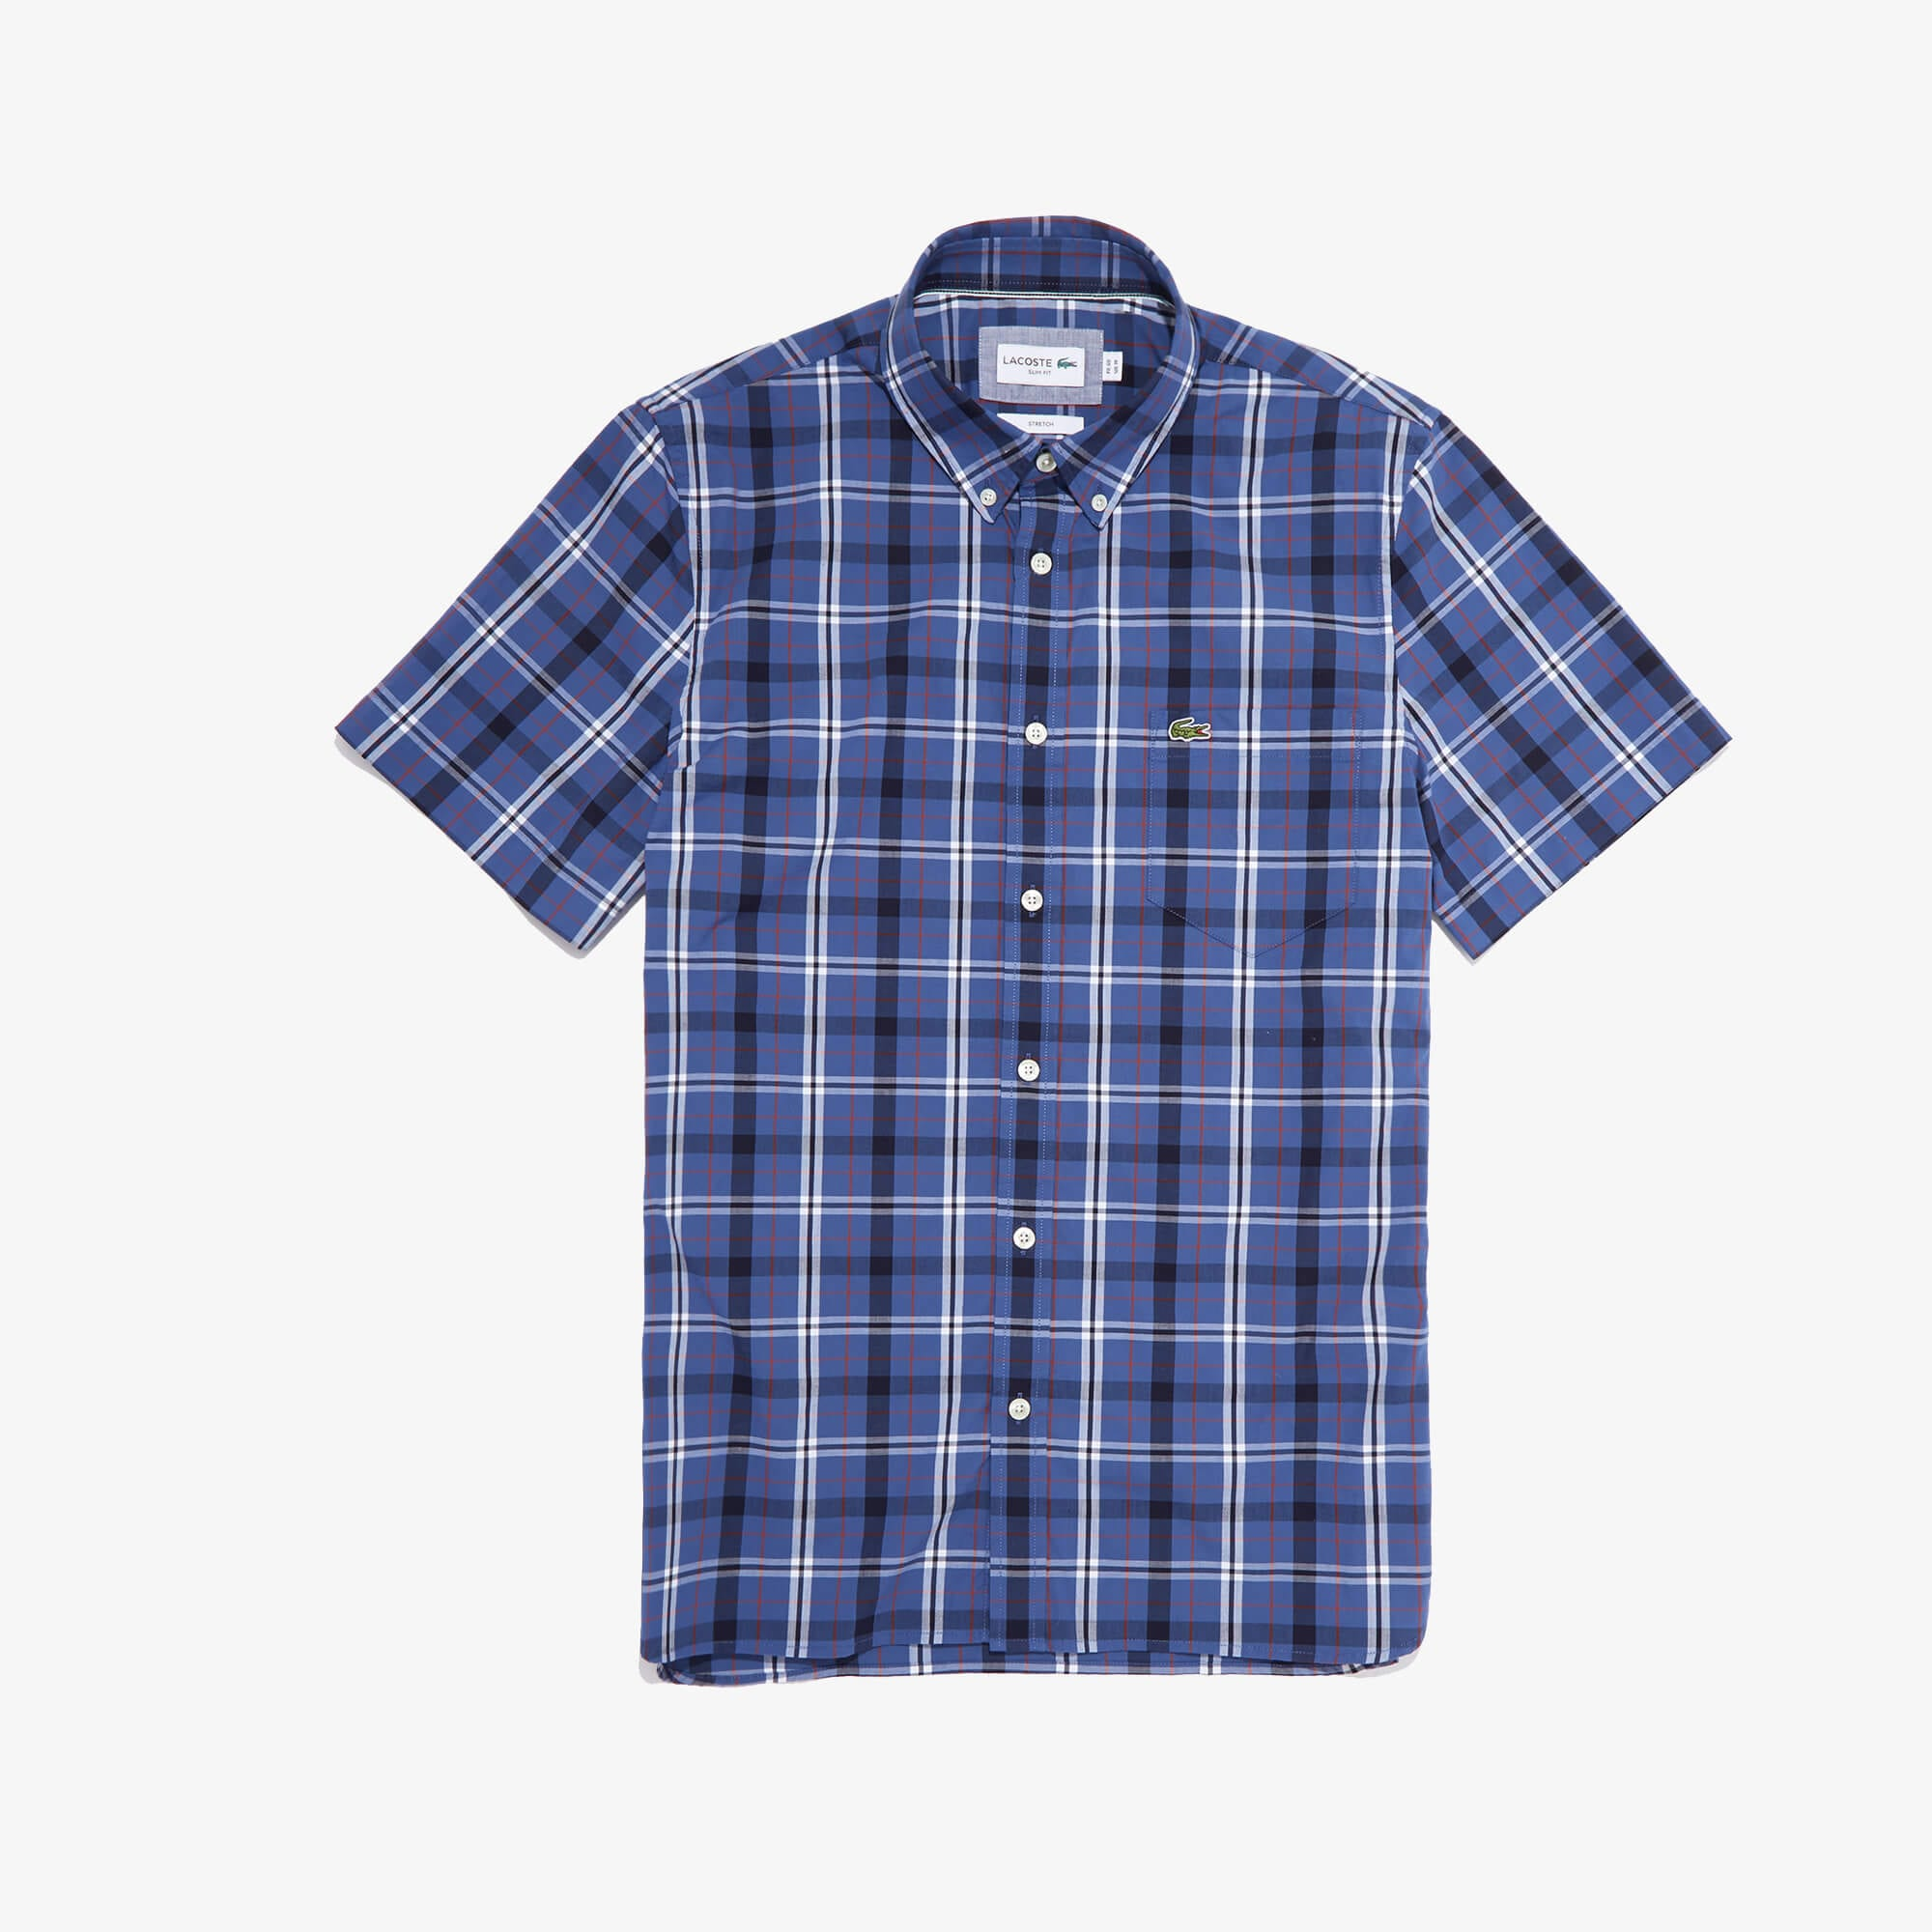 Men's Short Sleeve Stretch Plaid Poplin Shirt